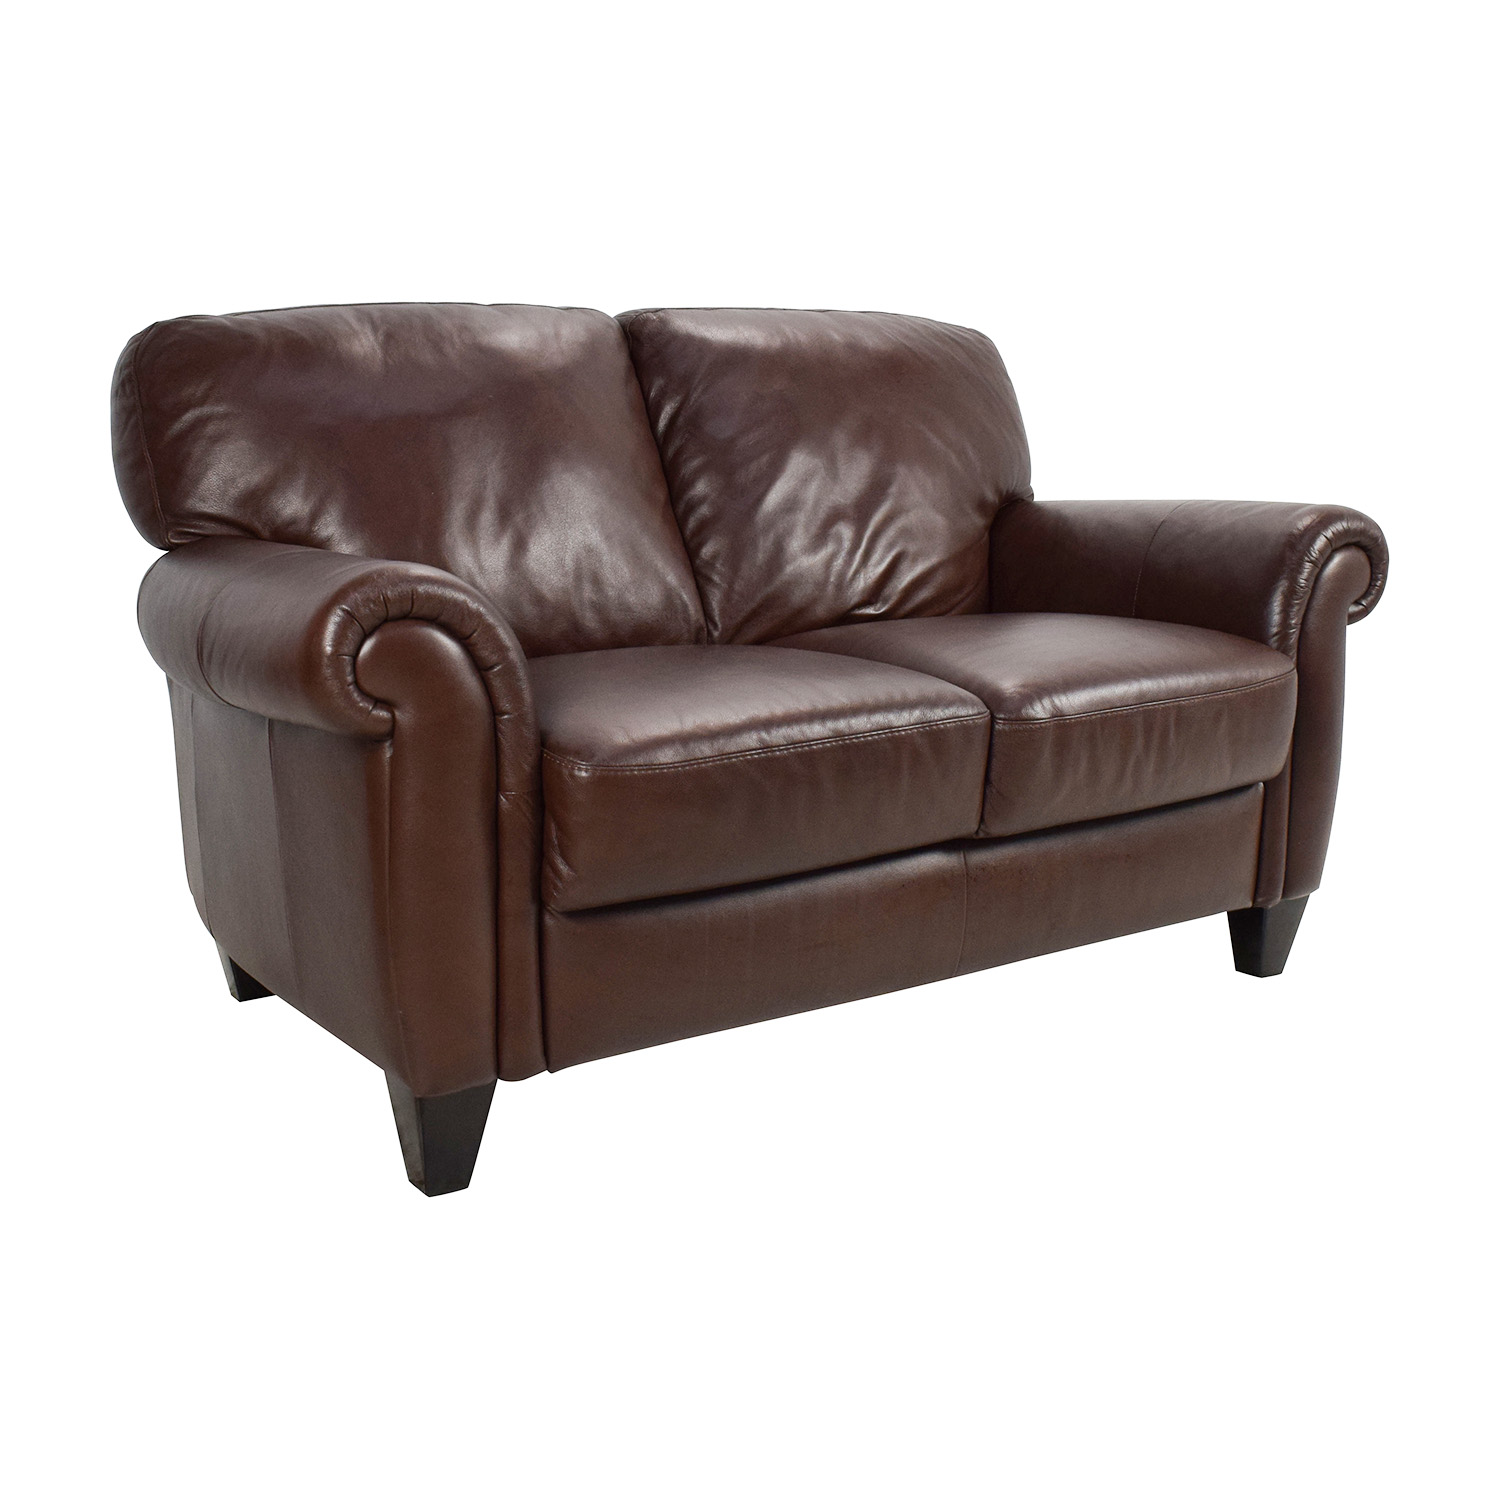 tan leather sofa and loveseat florida fabric corner bed 50 off brown roll arm sofas